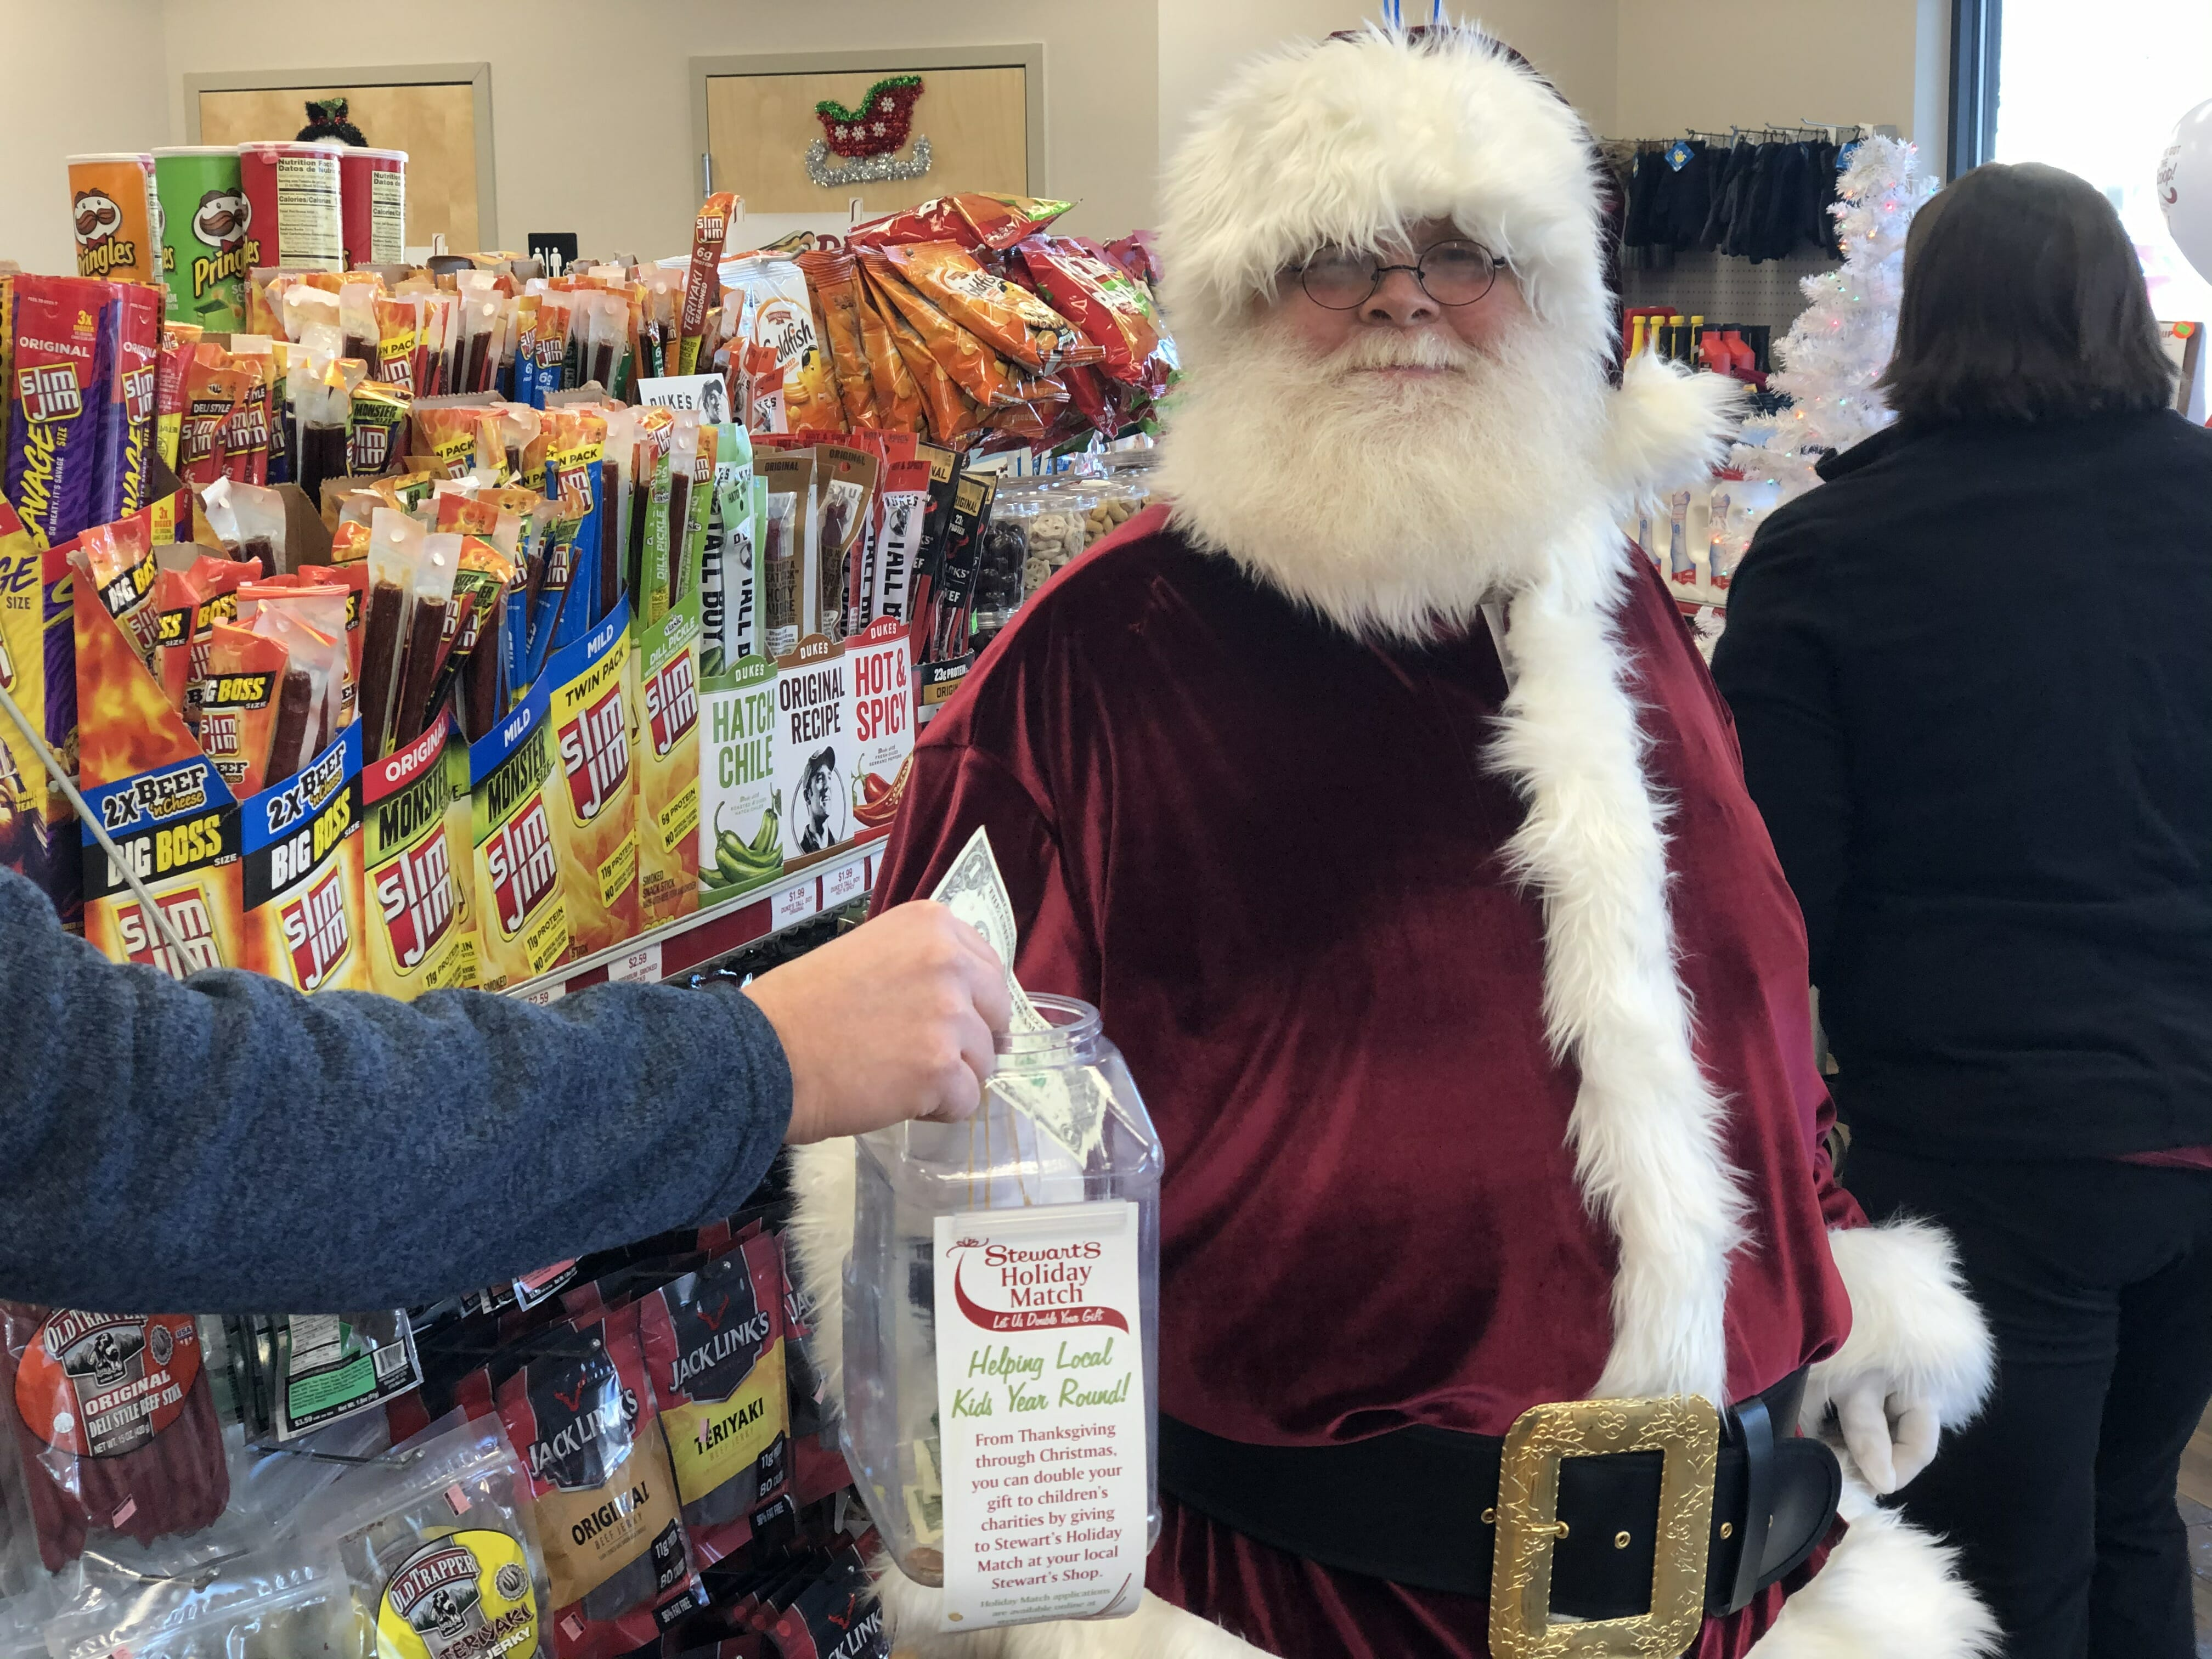 Santa collecting money for Stewarts Holiday Match